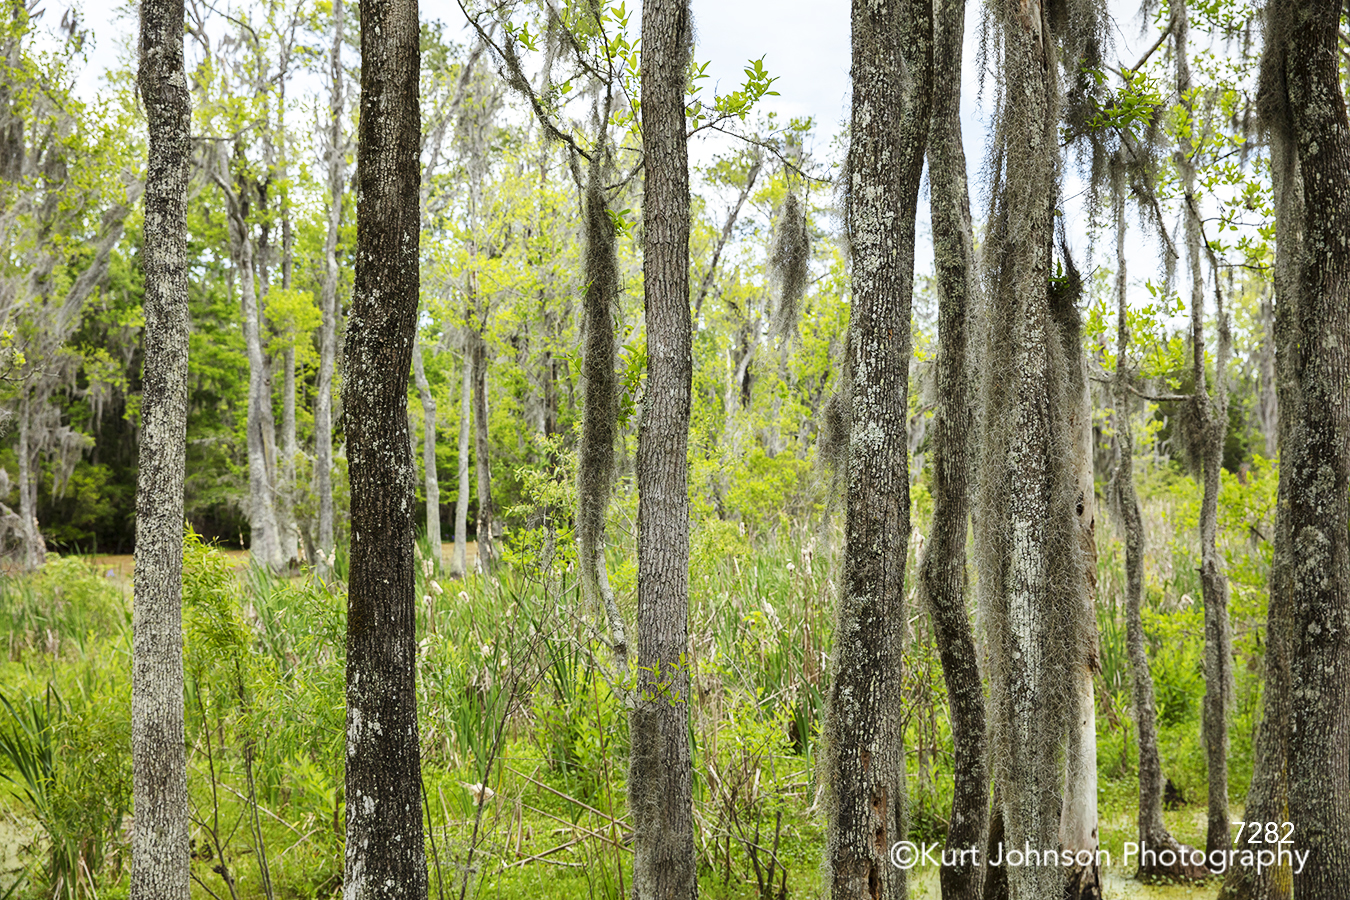 green tree trees tall branches forest landscape south southeast spanish moss